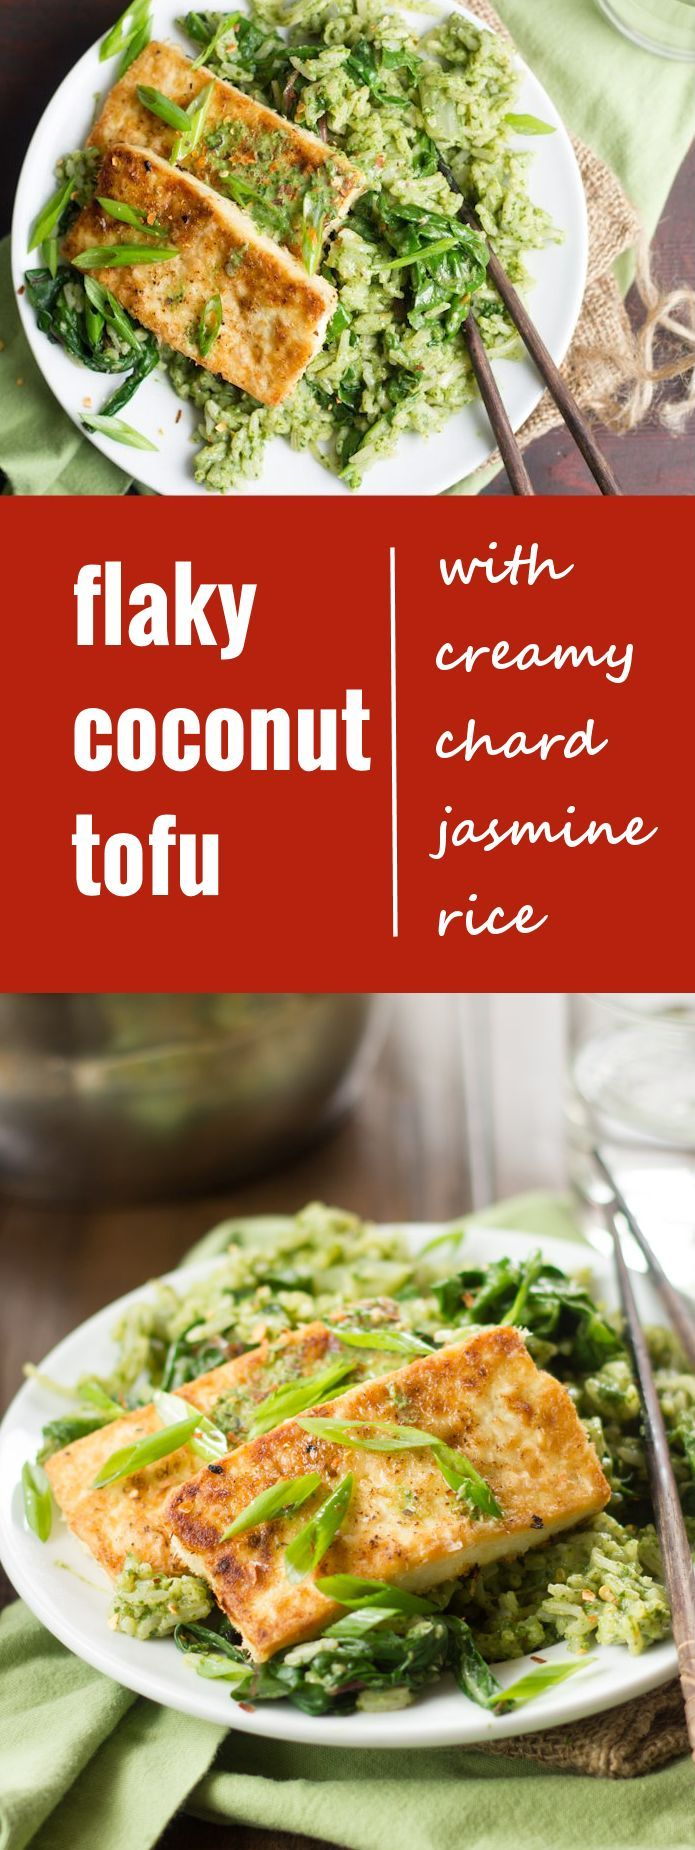 This flaky coconut tofu is made with tofu slabs coated in shredded coconut, pan-fried and served over jasmine rice in creamy coconut milk-chard sauce.